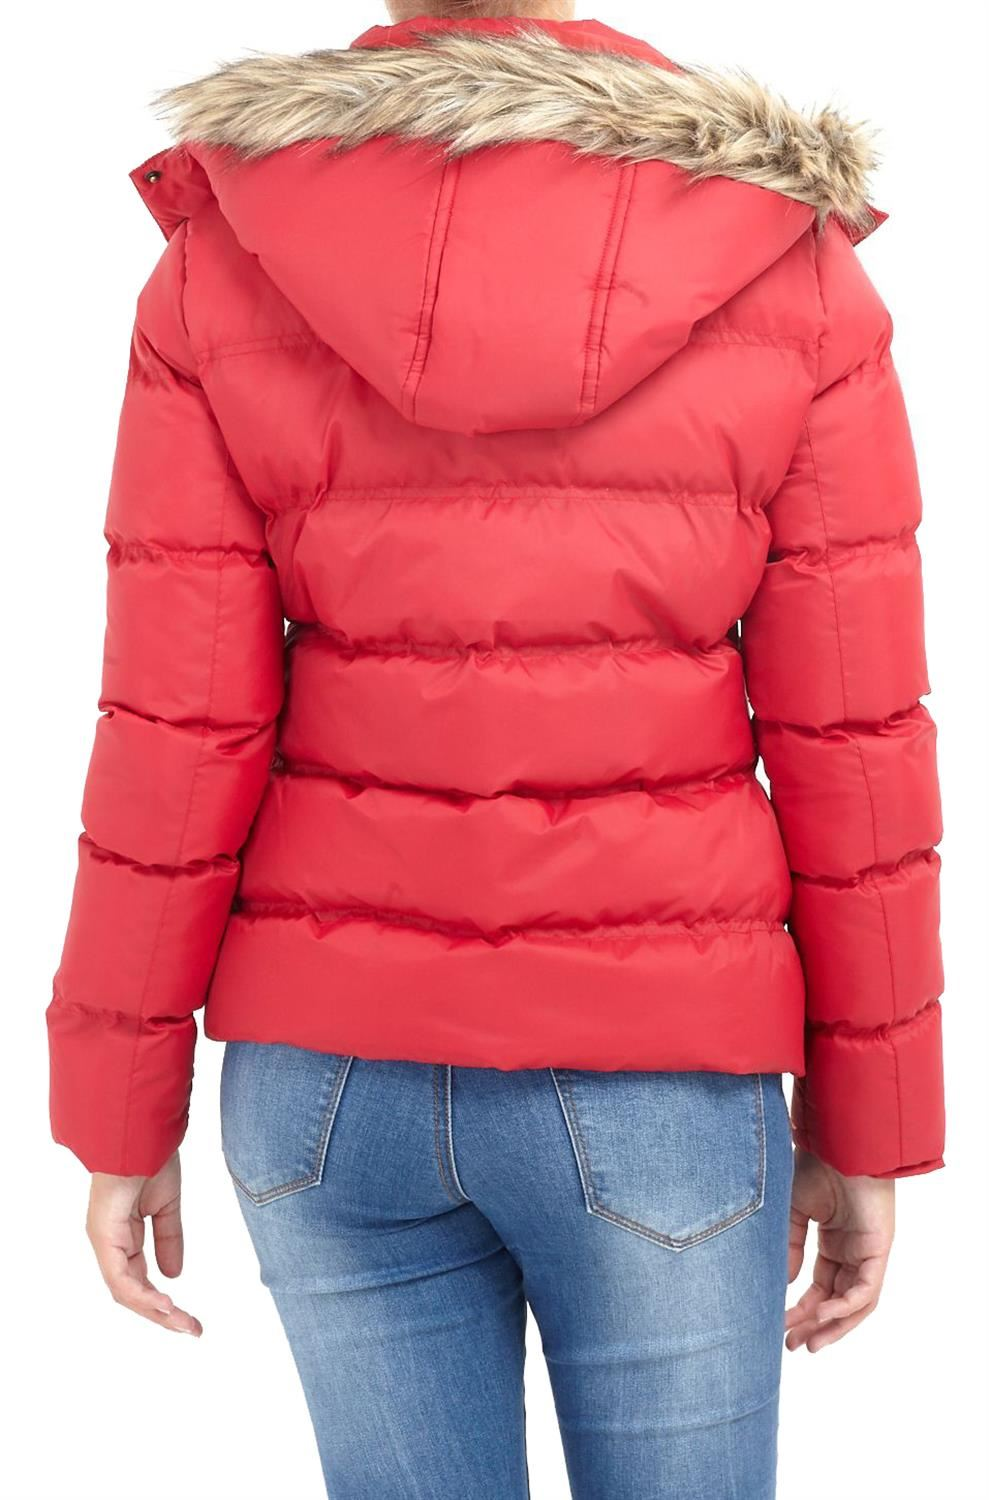 New-Womens-Funnel-Neck-Fur-Hooded-Padded-Quilted-Winter-Coat-Puffer-Parka-Jacket thumbnail 6